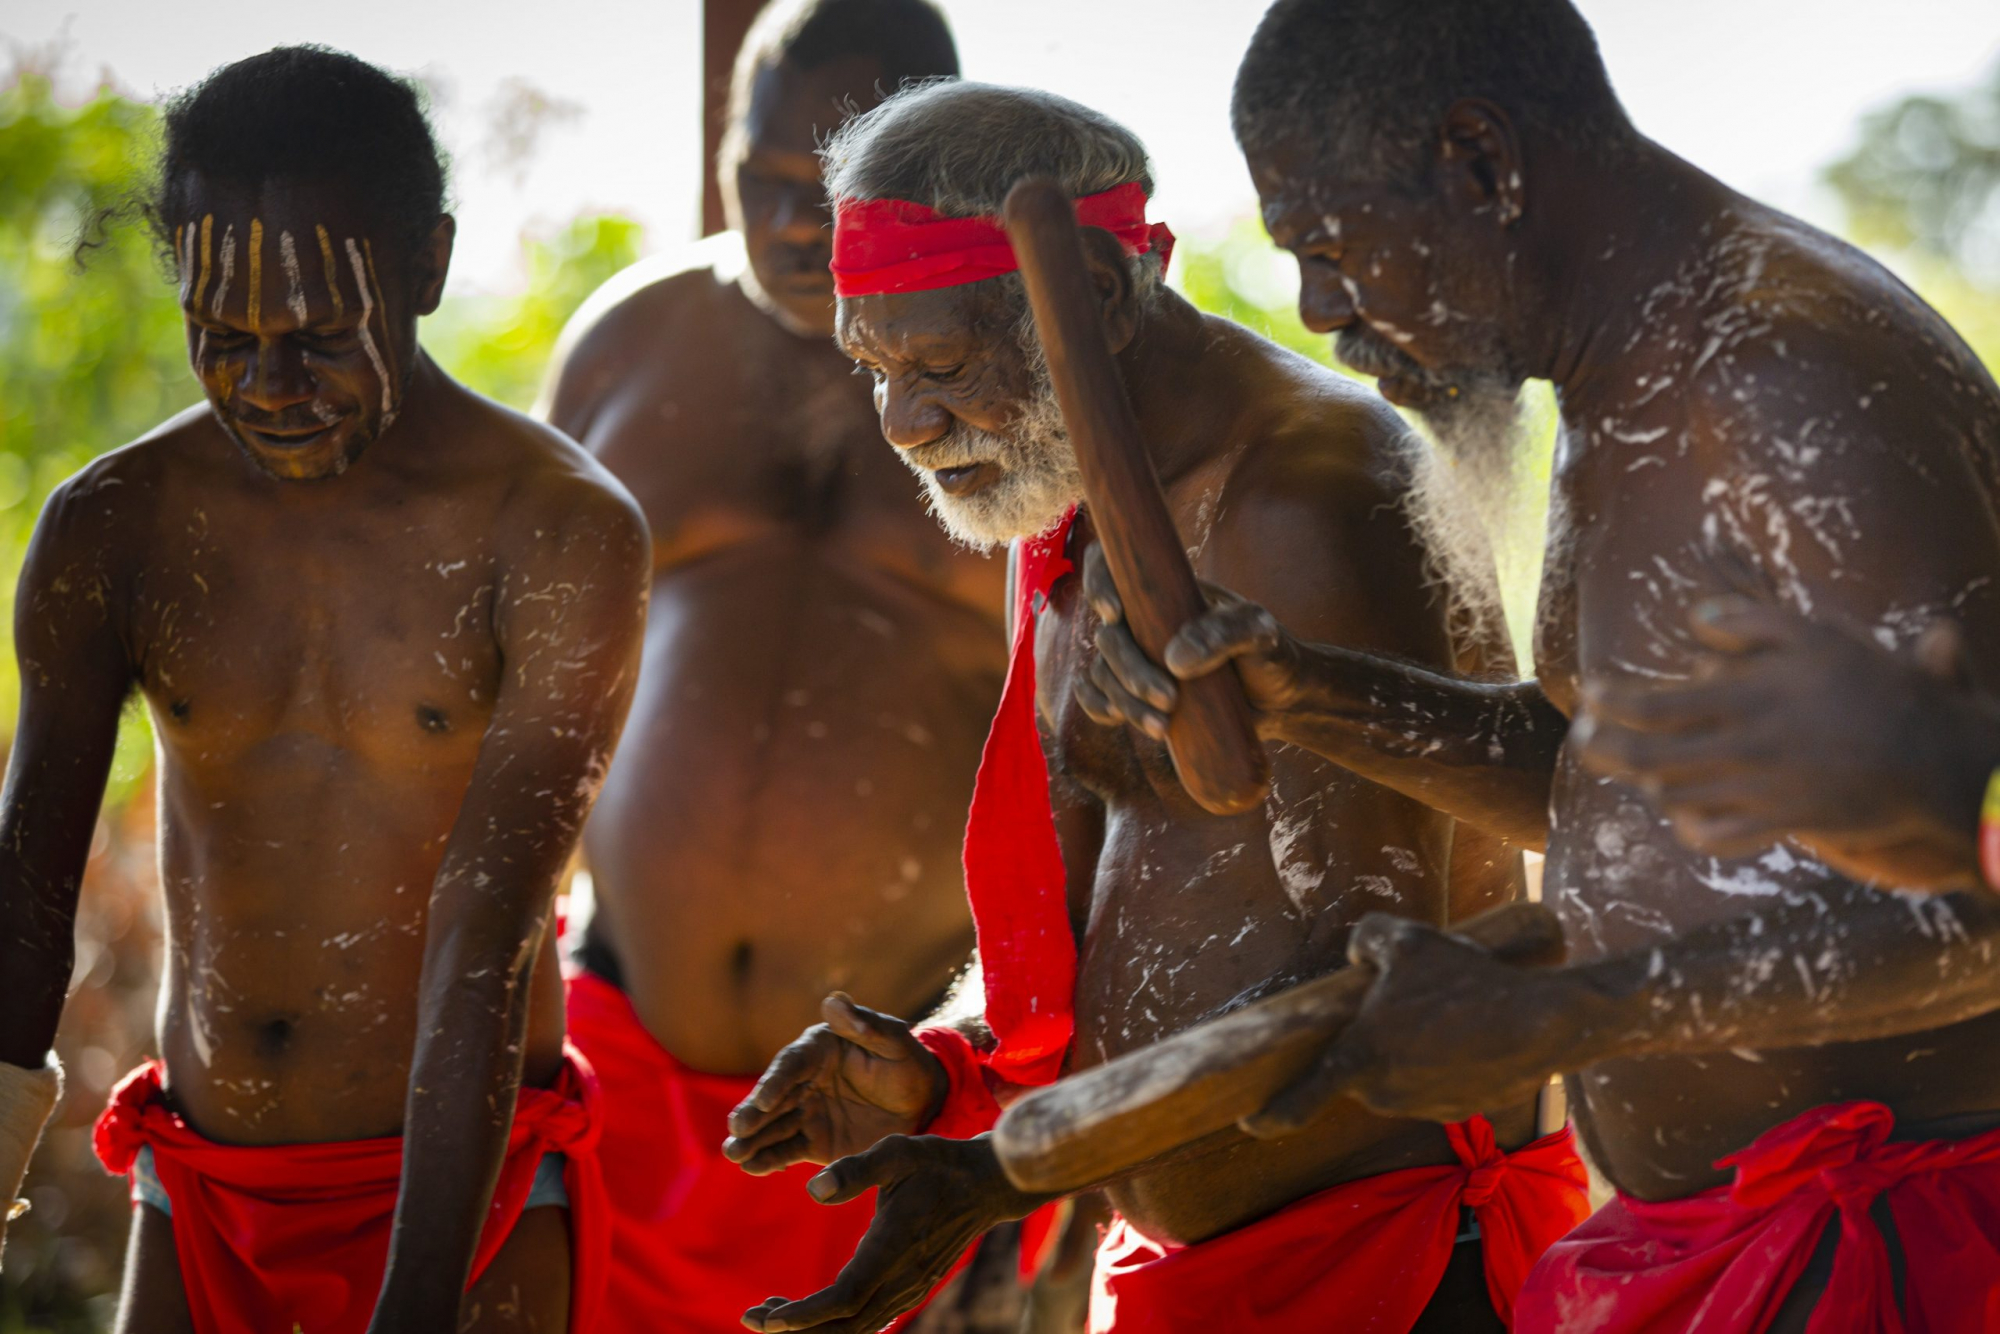 Kakadu & Tiwi Islands Explorer | Aboriginal men performing a traditional dance, Tiwi Islands, Top End, Northern Territory